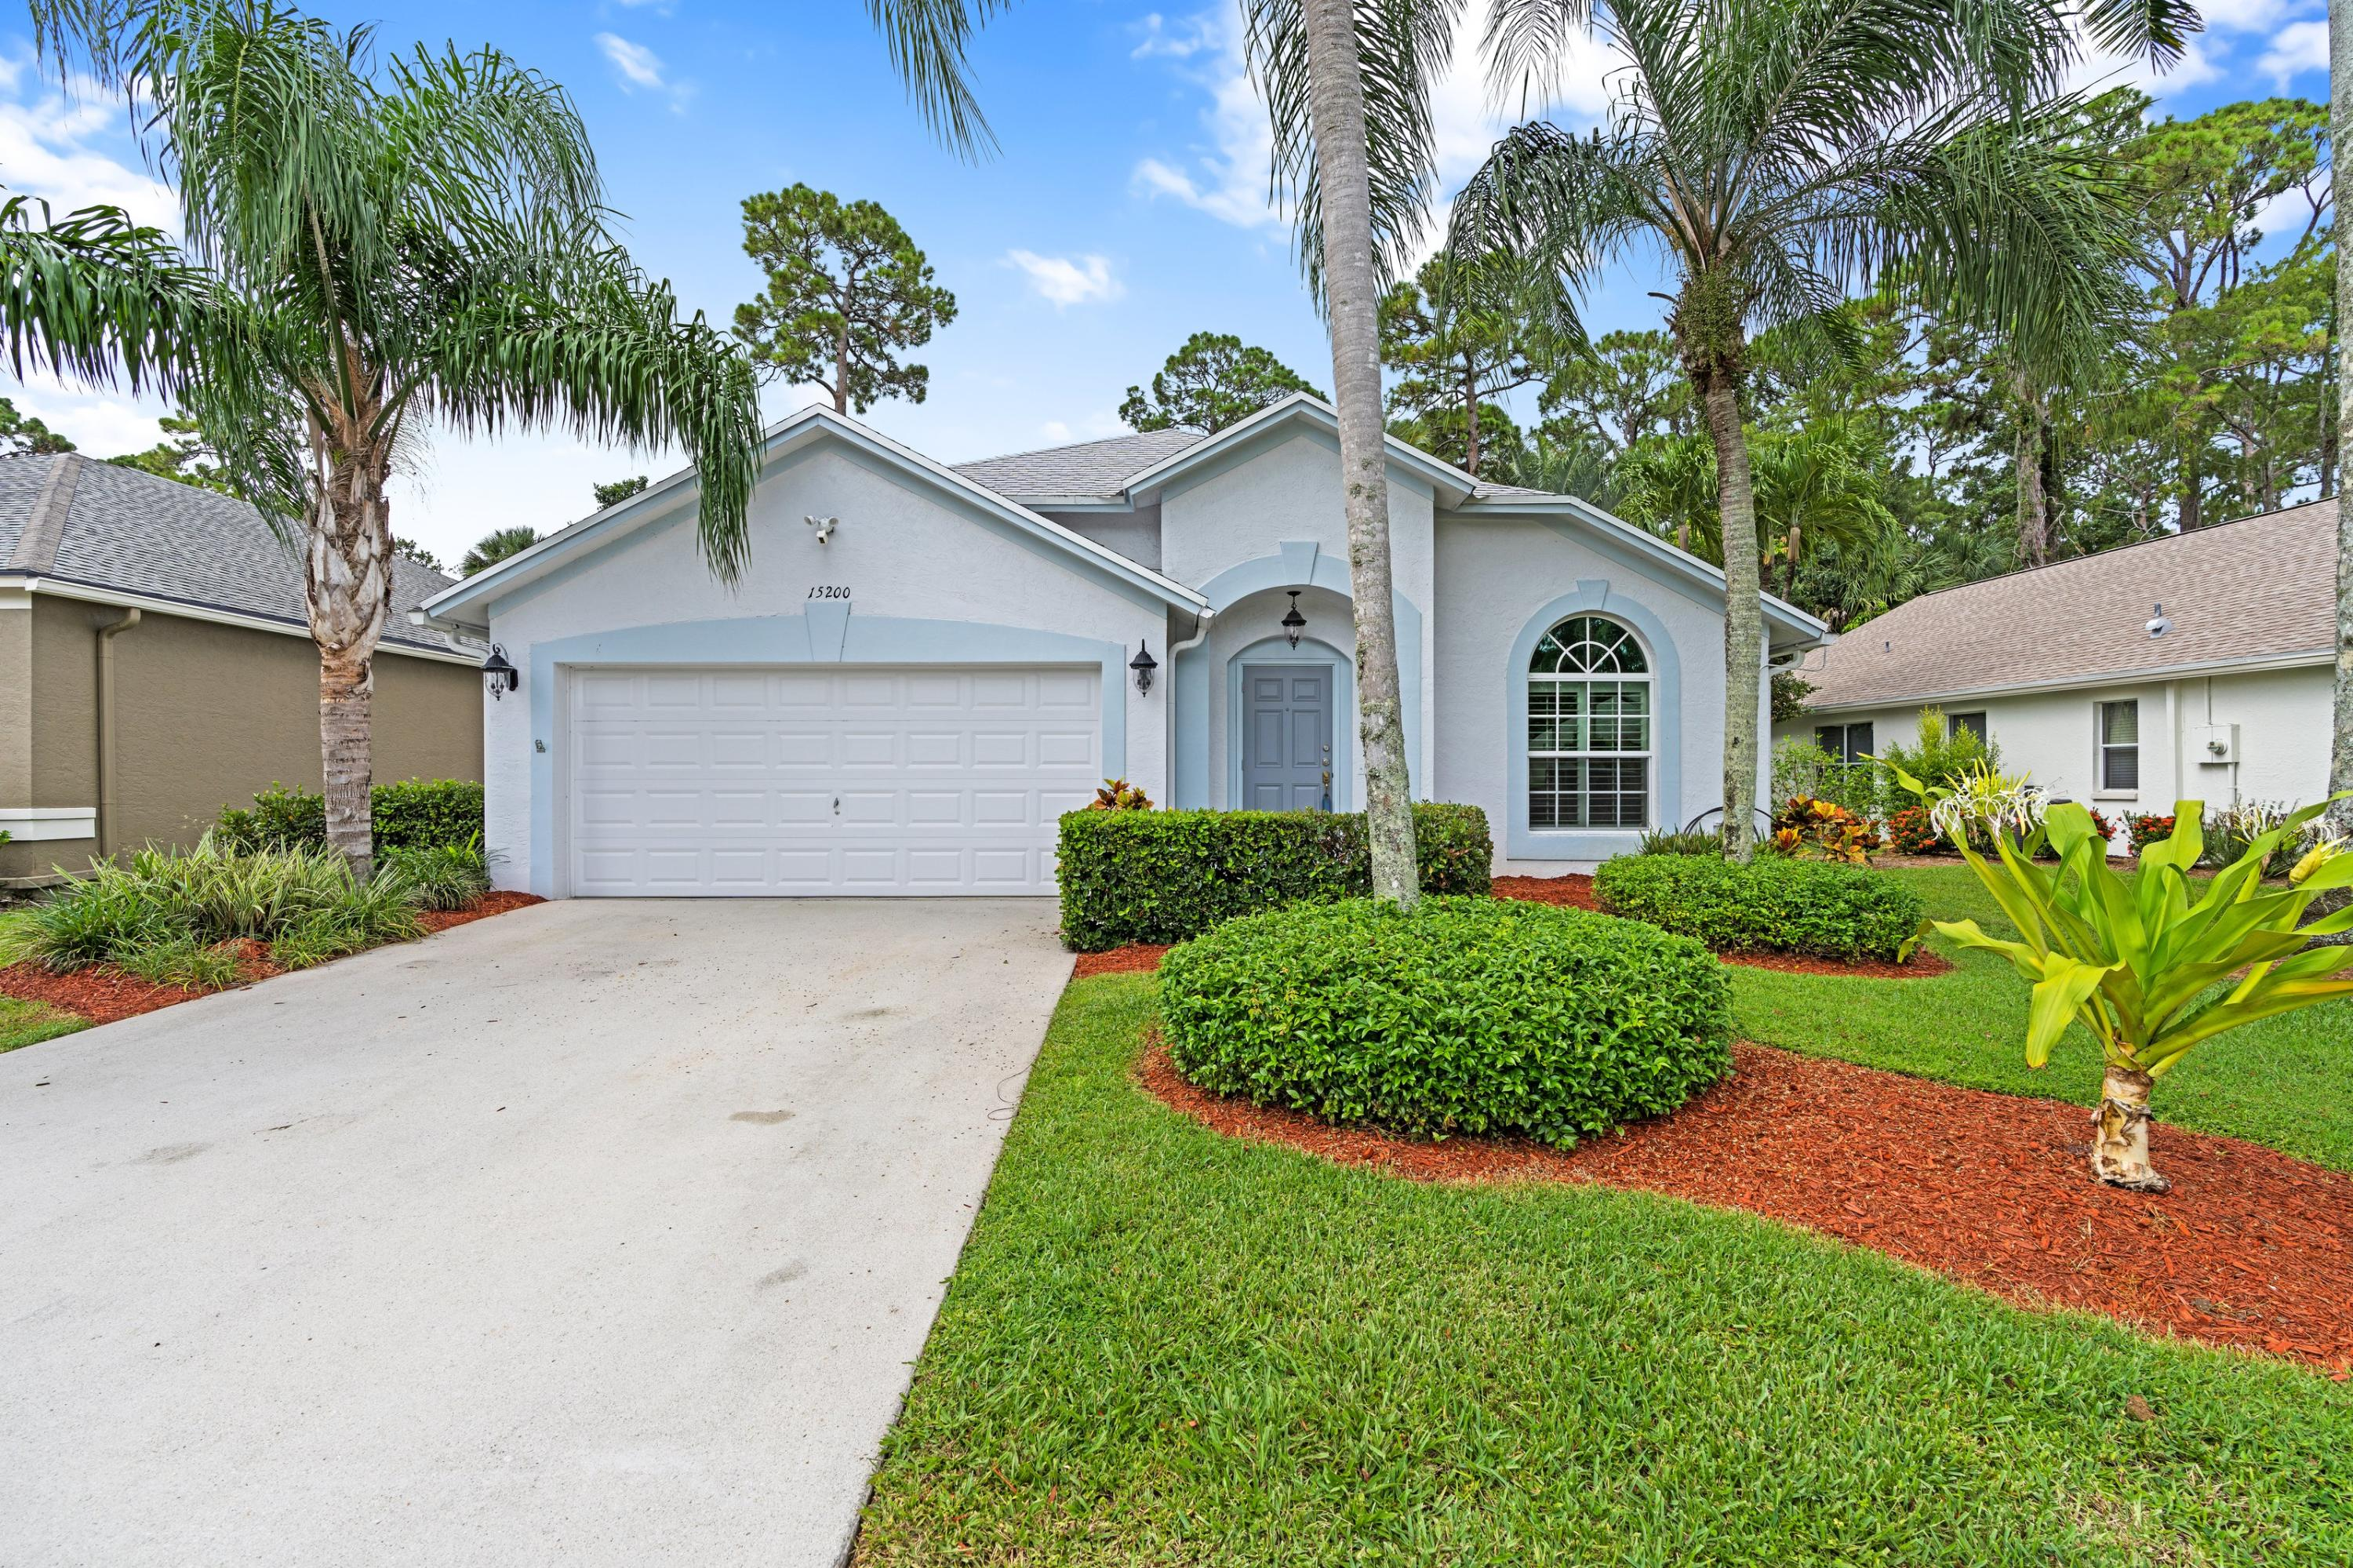 15200  Oak Chase Court Court  For Sale 10730932, FL